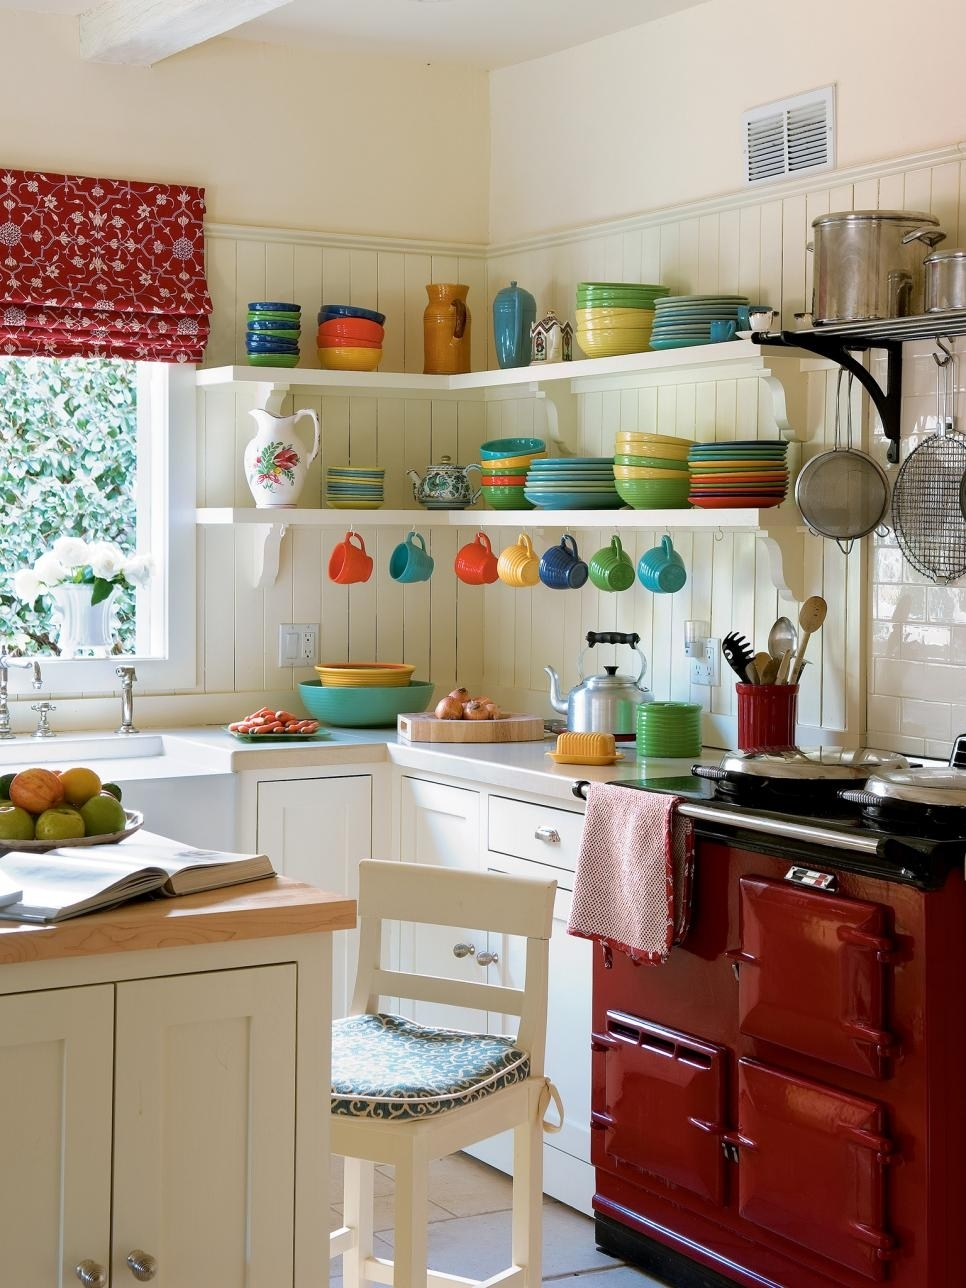 10 Fashionable Decorating Ideas For Small Kitchens %name 2020